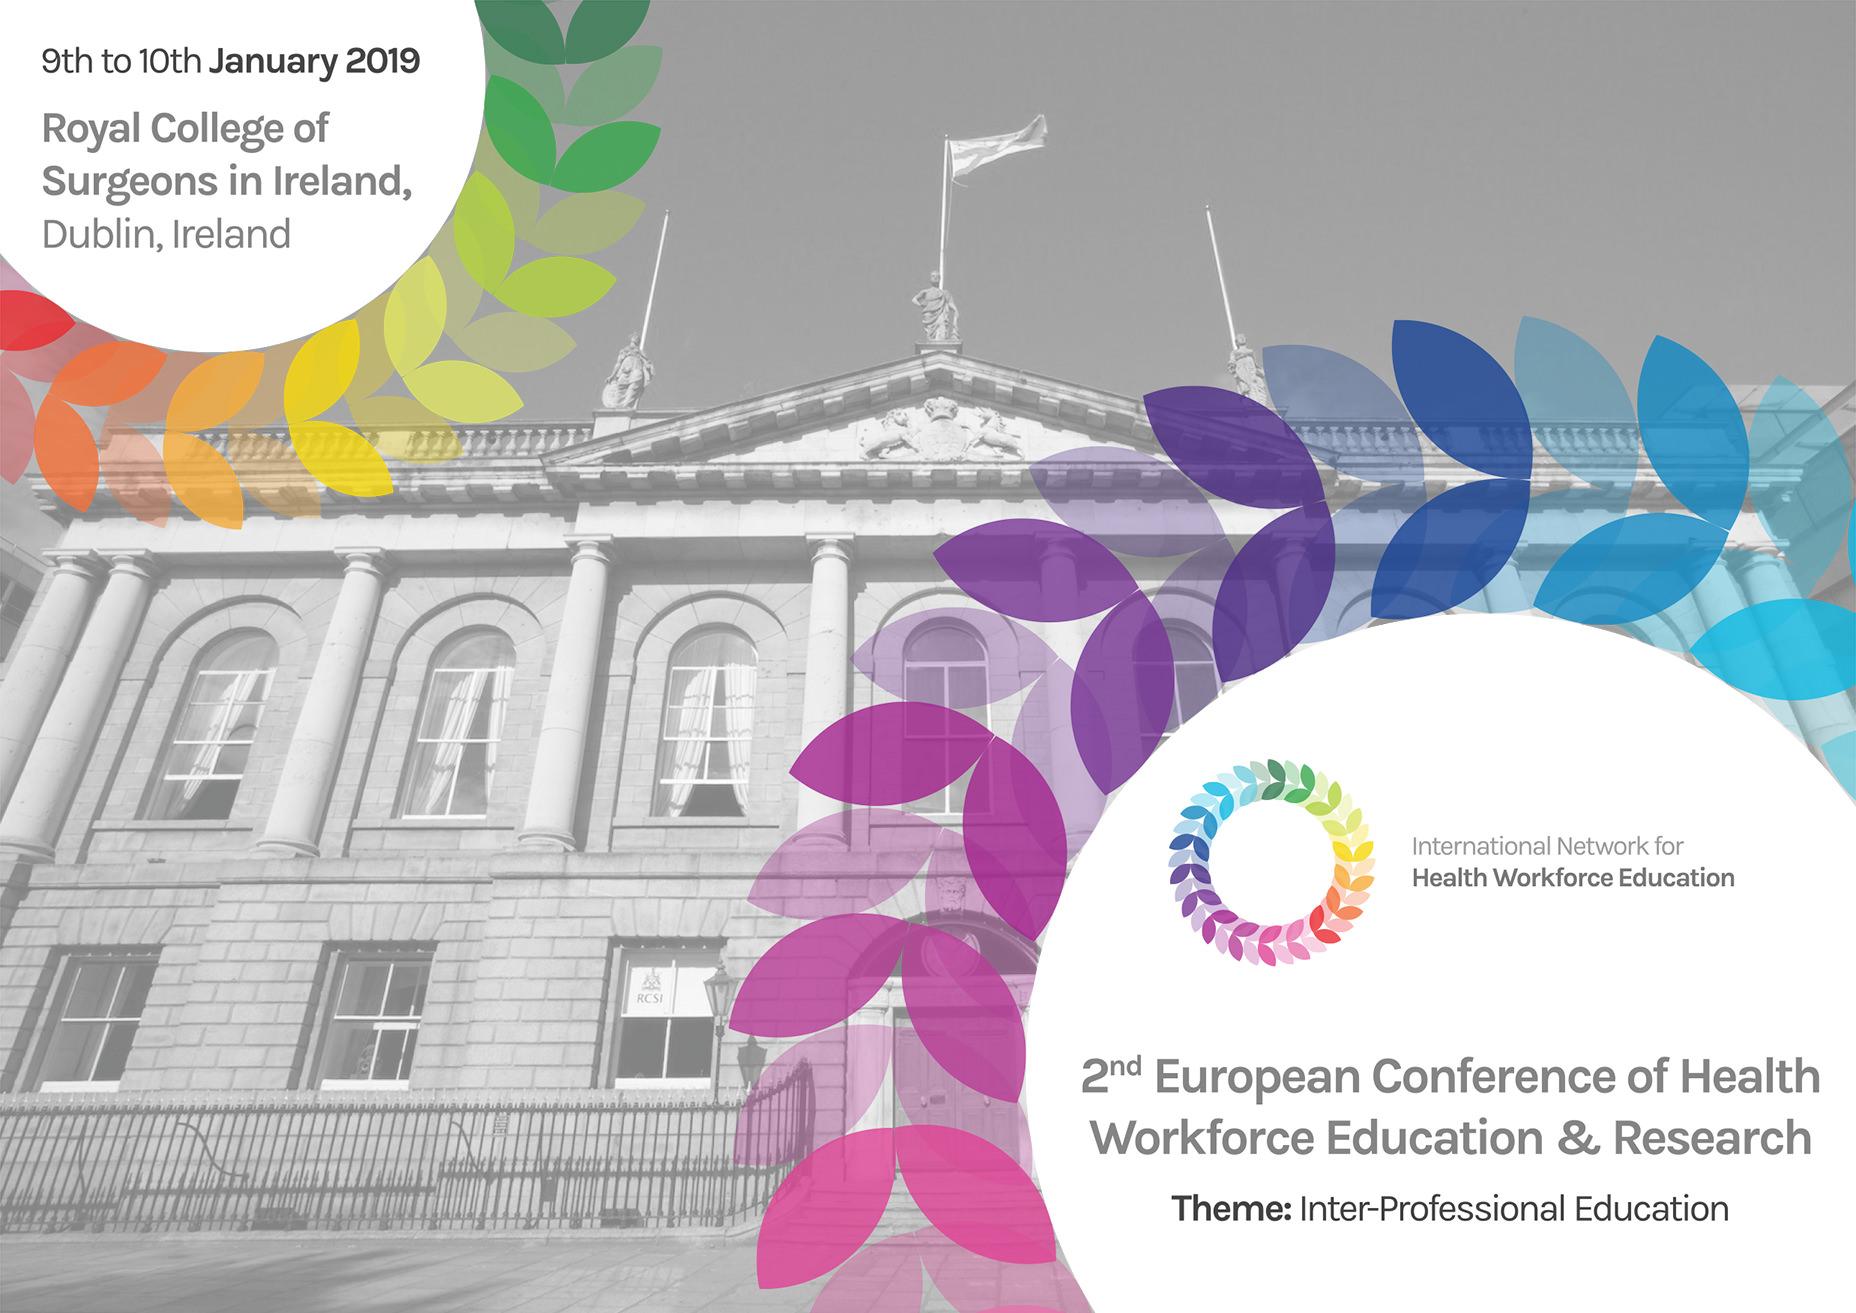 Dublin 2019 | International Network for Health Workforce Education